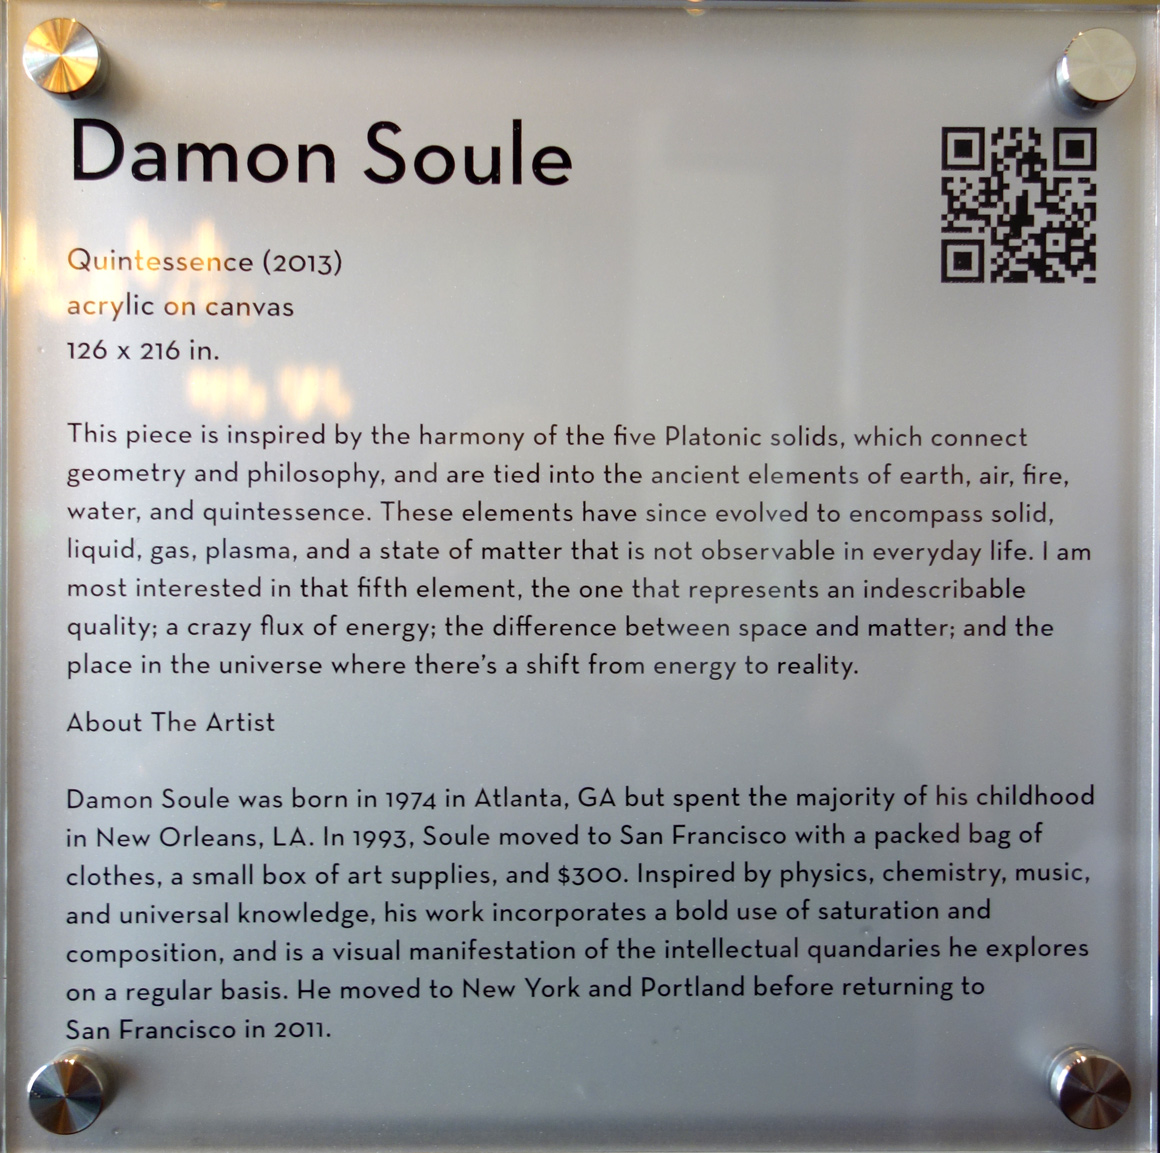 Damon Soule Bio at San Francisco artist at Grand Hyatt Hotel